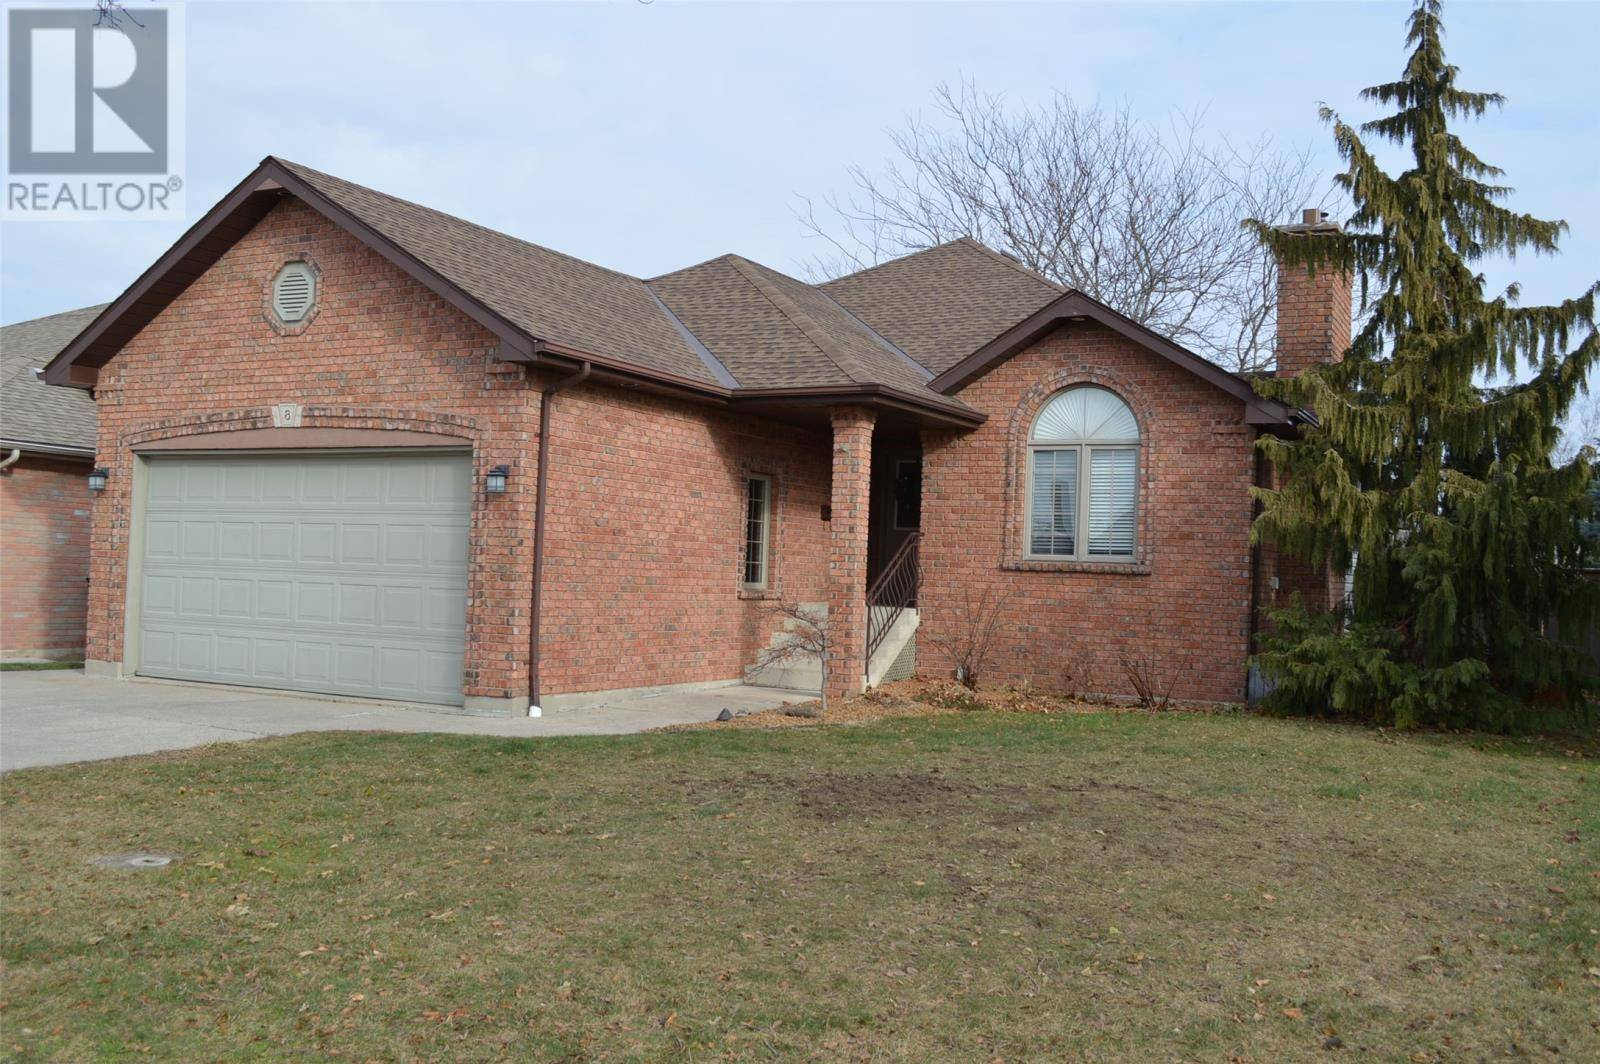 House for sale at 8 Garden Path Chatham Ontario - MLS: 19025933